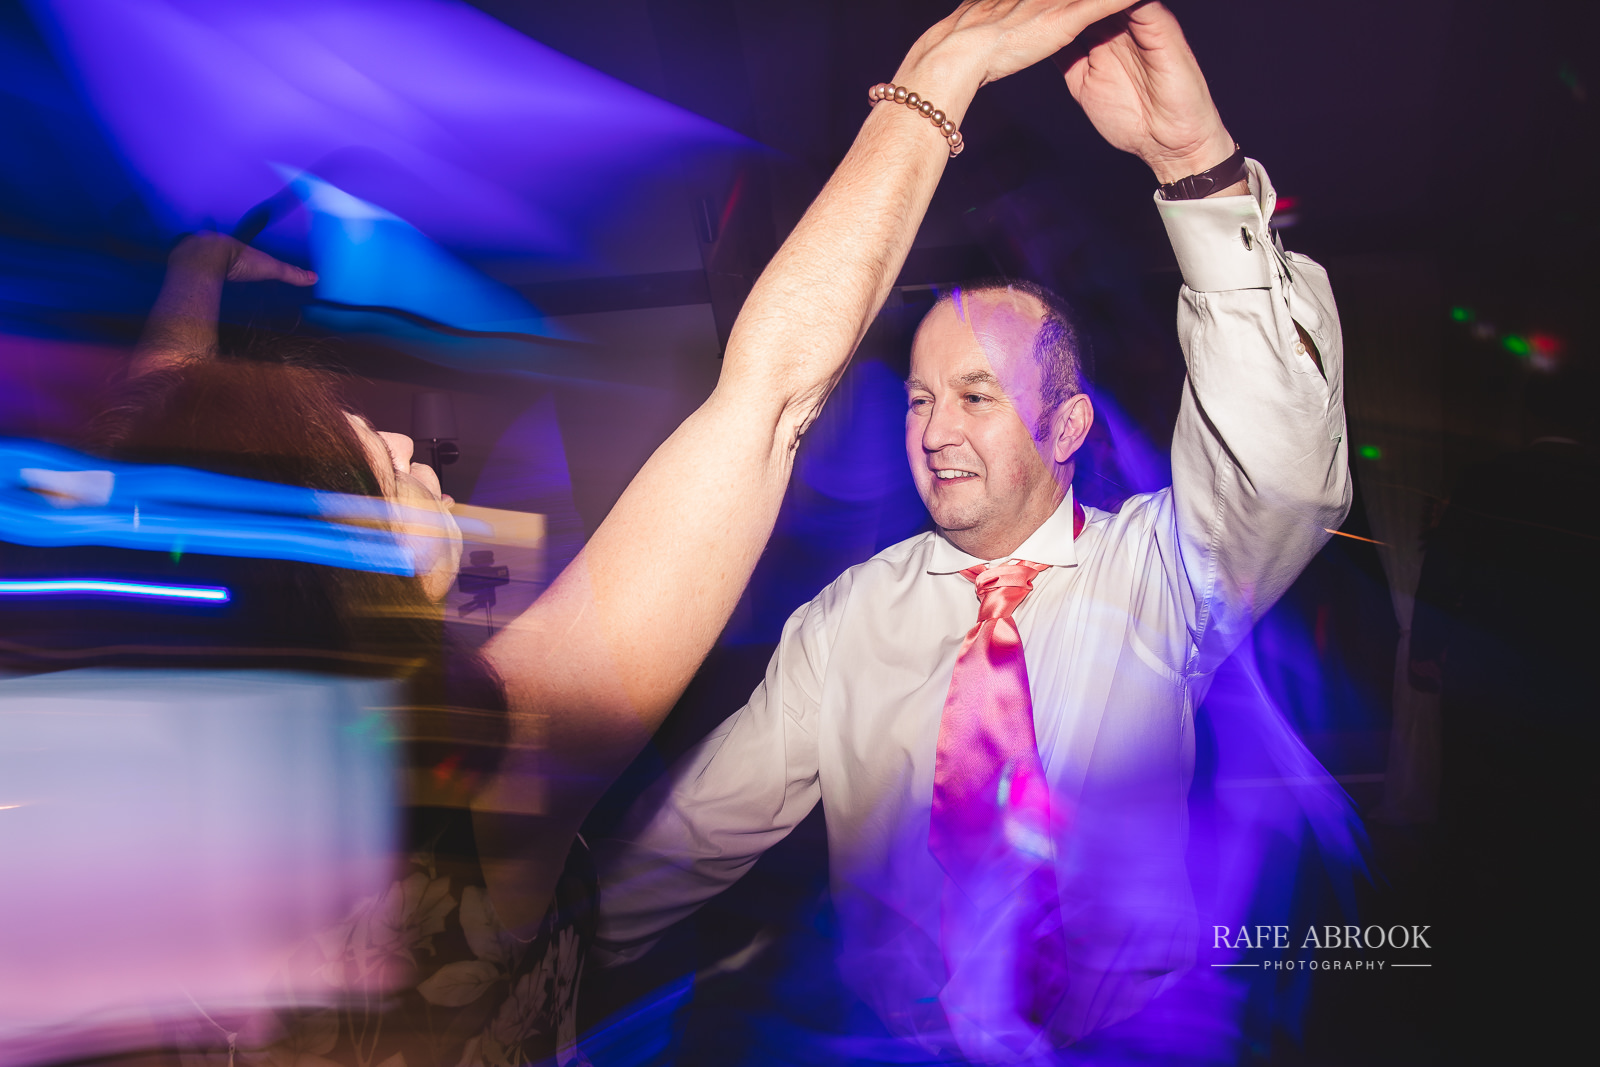 bassmead manor barns wedding st neots cambridgeshire hertfordshire wedding photographer rafe abrook-1822.jpg